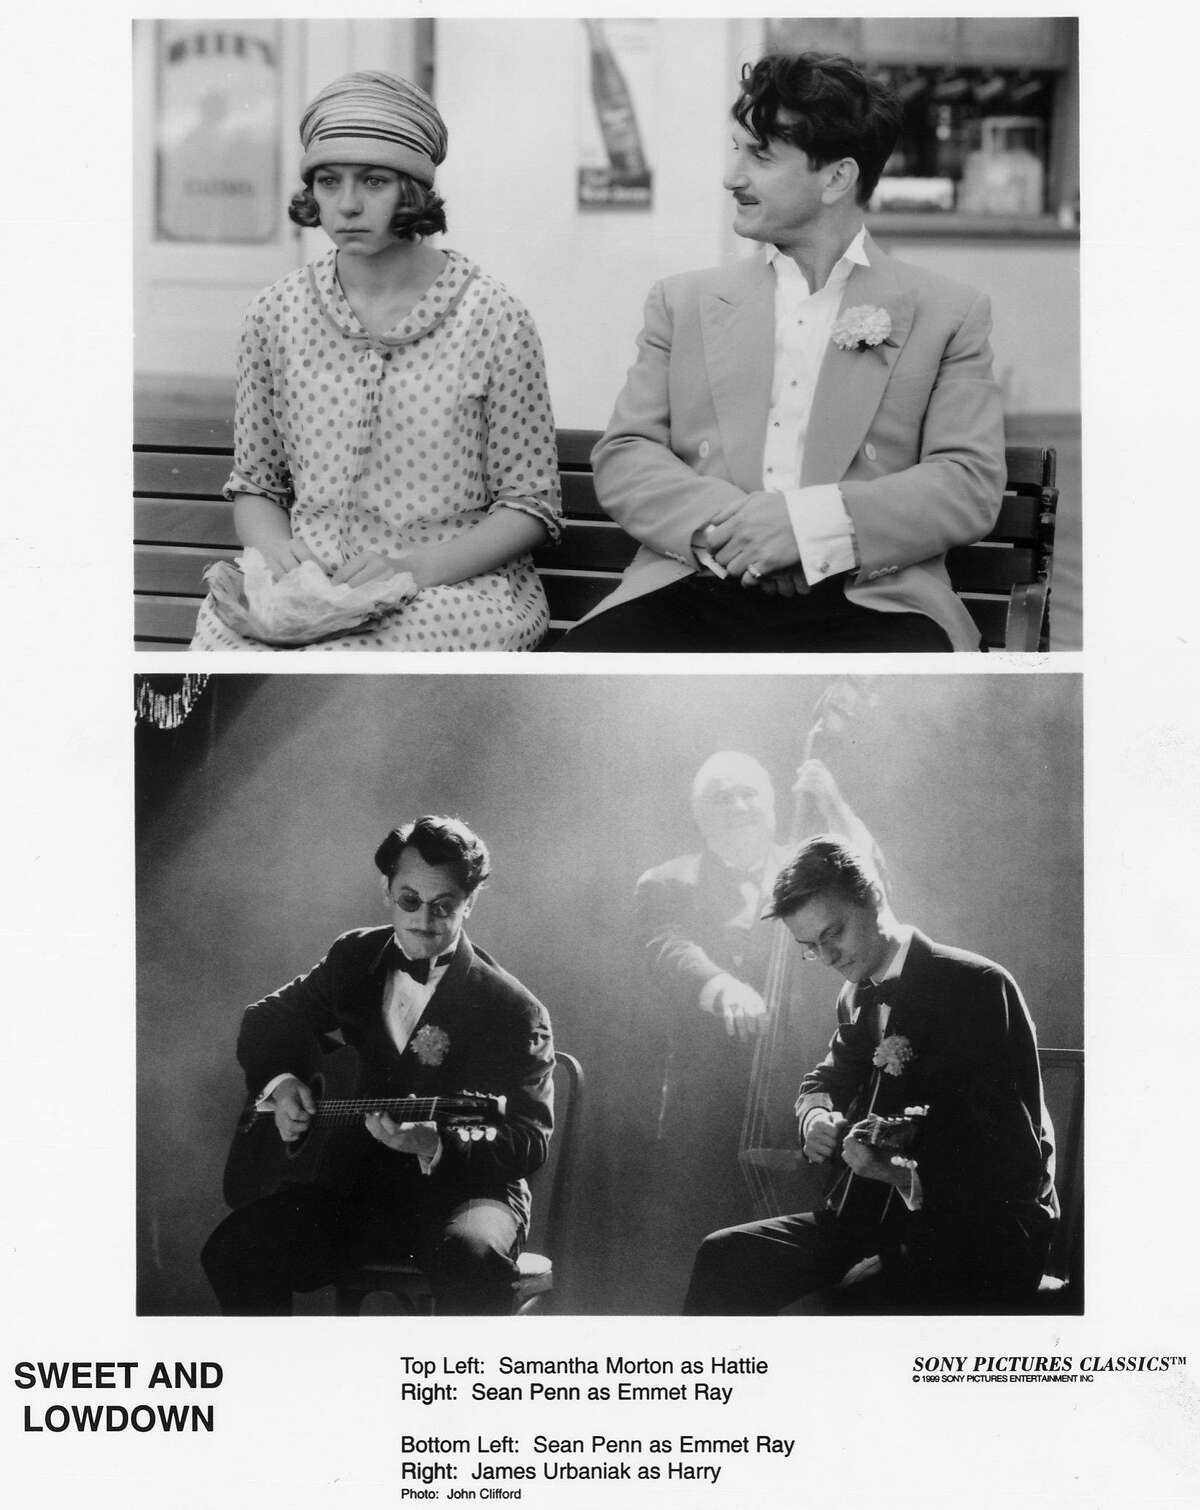 """SWEET AND LOWDOWN - Top Left: Samantha Morton as Hattie. Right: Sean Penn as Emmet Ray. Bottom Left: Sean Penn as Emmet Ray. Right: James Urbaniak as Harry. Photo: John Clifford. Sony Pictures Classics. HOUCHRON CAPTION (01/27/2000): Emmet Ray (Sean Penn, right) doesn't know how to express his feelings for Hattie (Samantha Morton) in """"Sweet and Lowdown."""""""